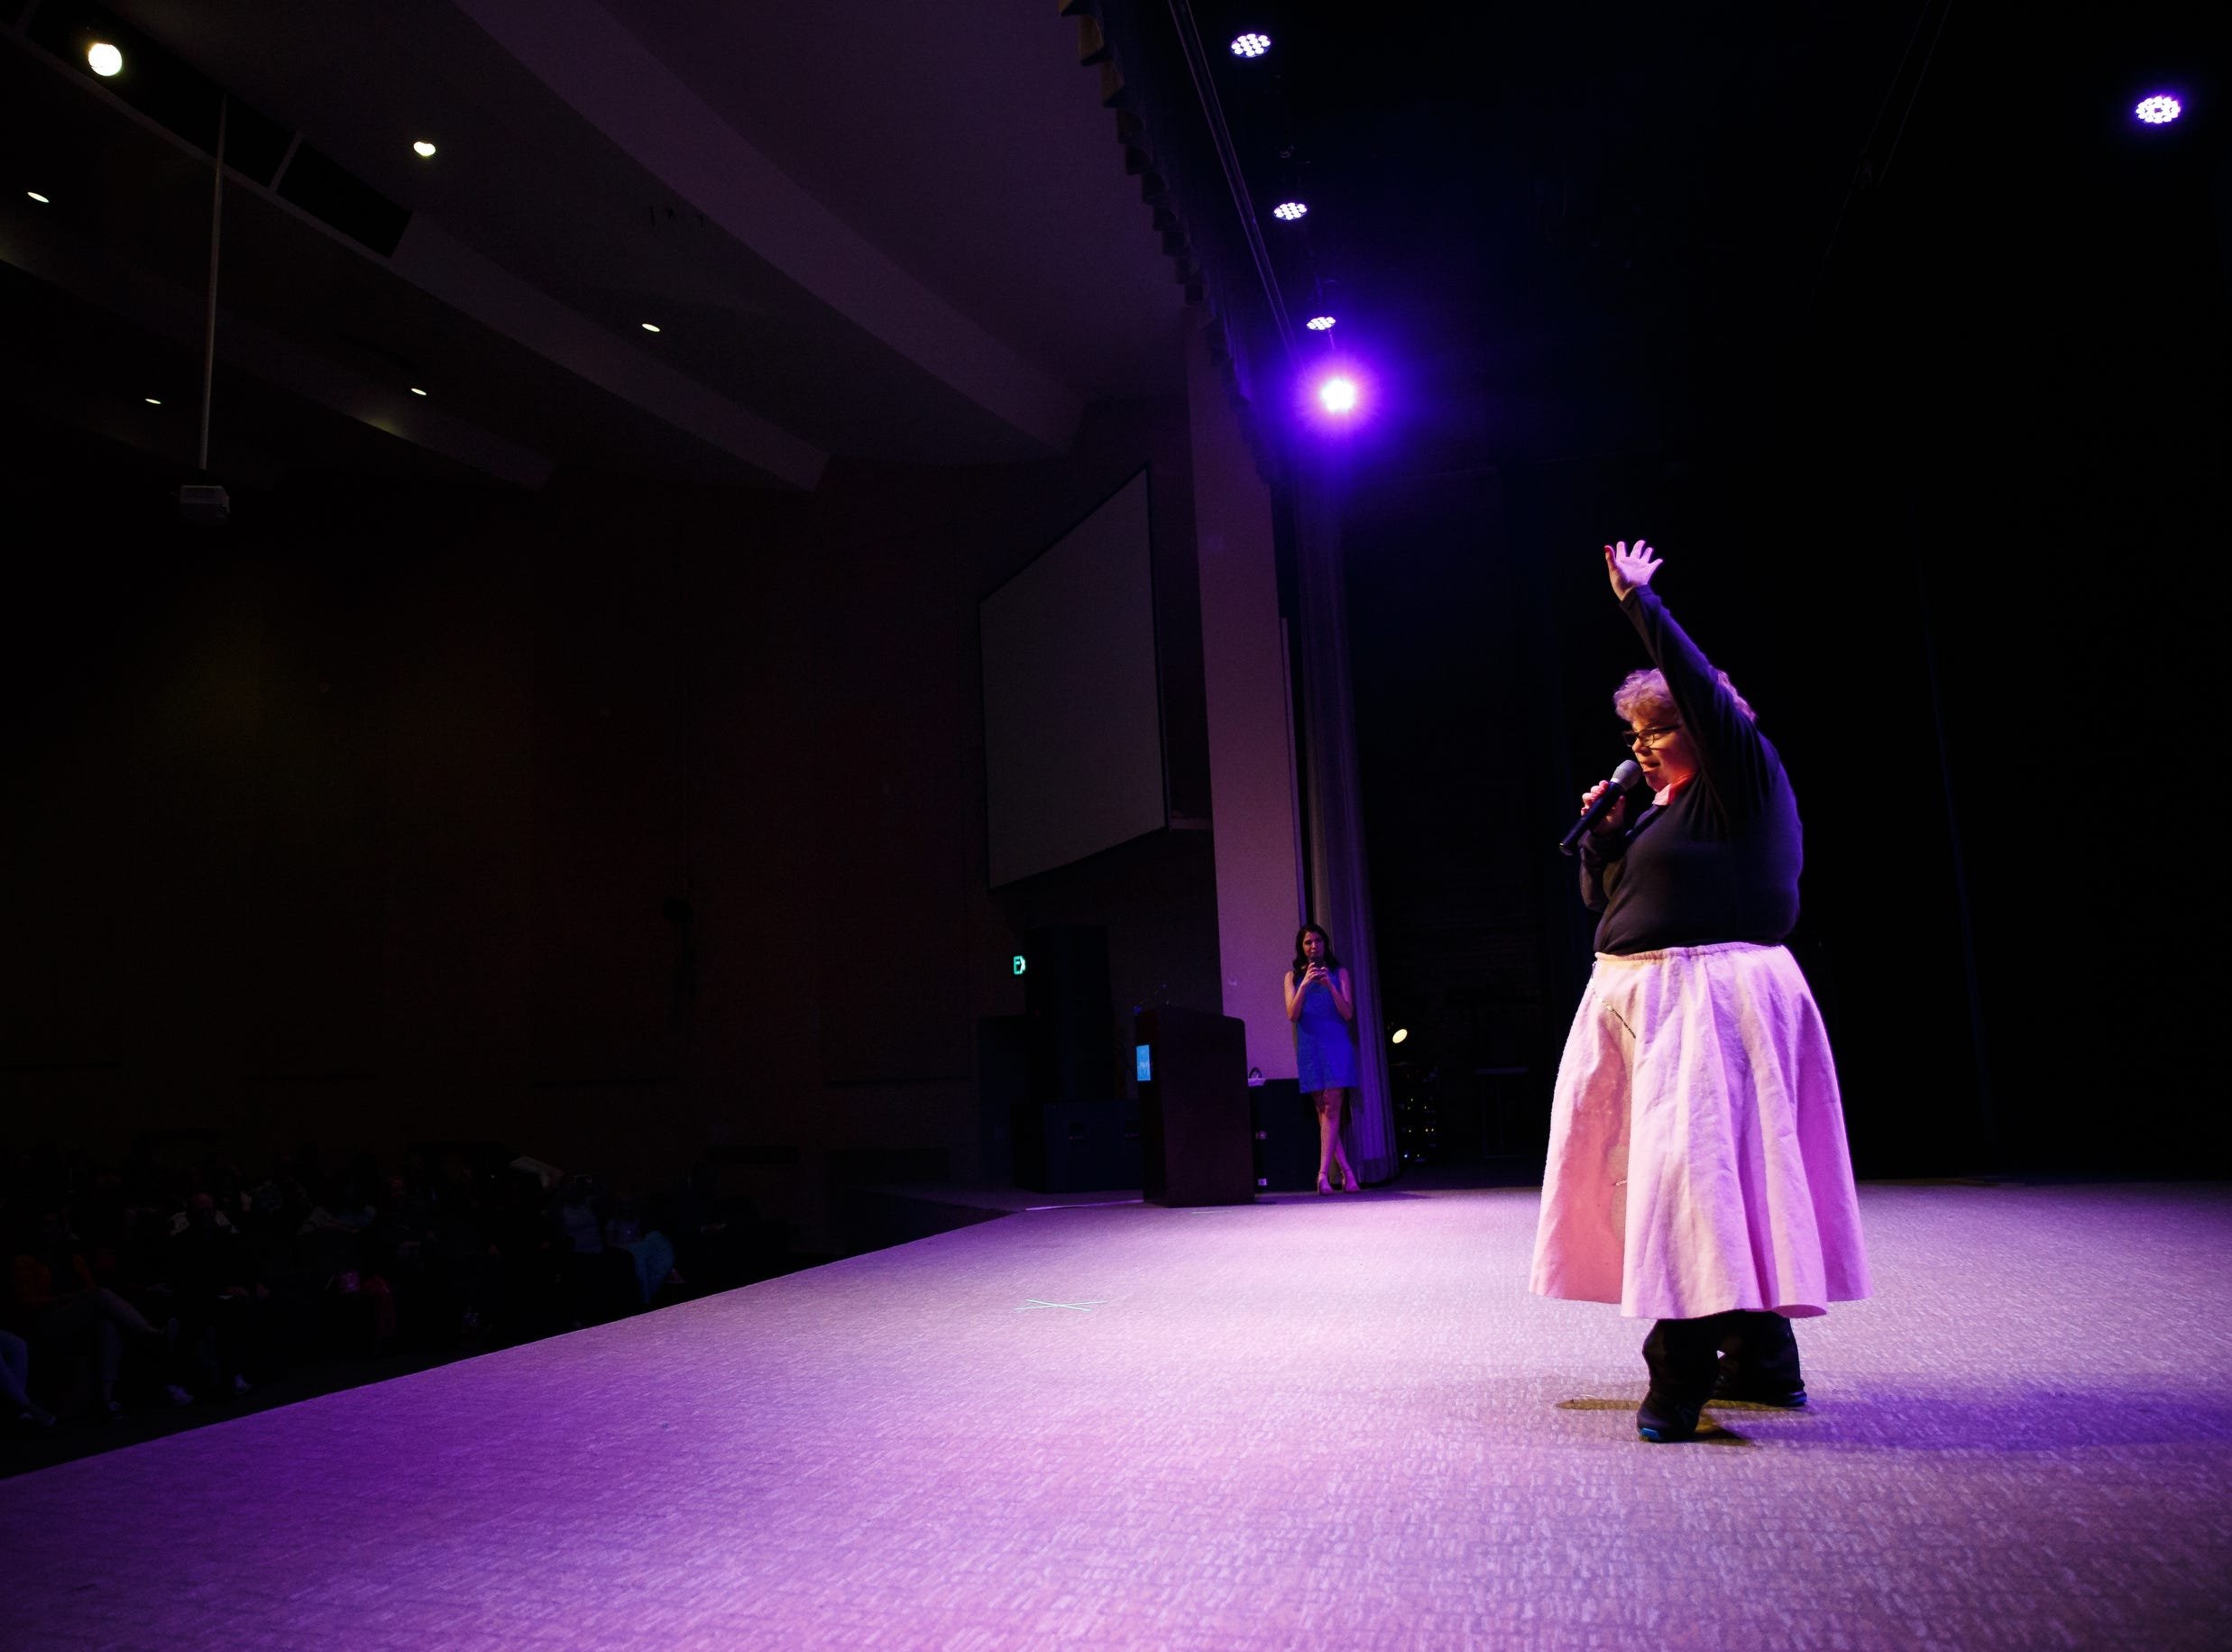 """Katie Brown competes in the talent portion of the 2019 Miss Amazing pageant by singing """"Grease"""" at Franklin Jr. High School on Saturday, April 13, 2019, in Des Moines. The event started in 2013 and gives women with disabilities the opportunity to learn new skills and build confidence while adding in some friendly competition."""